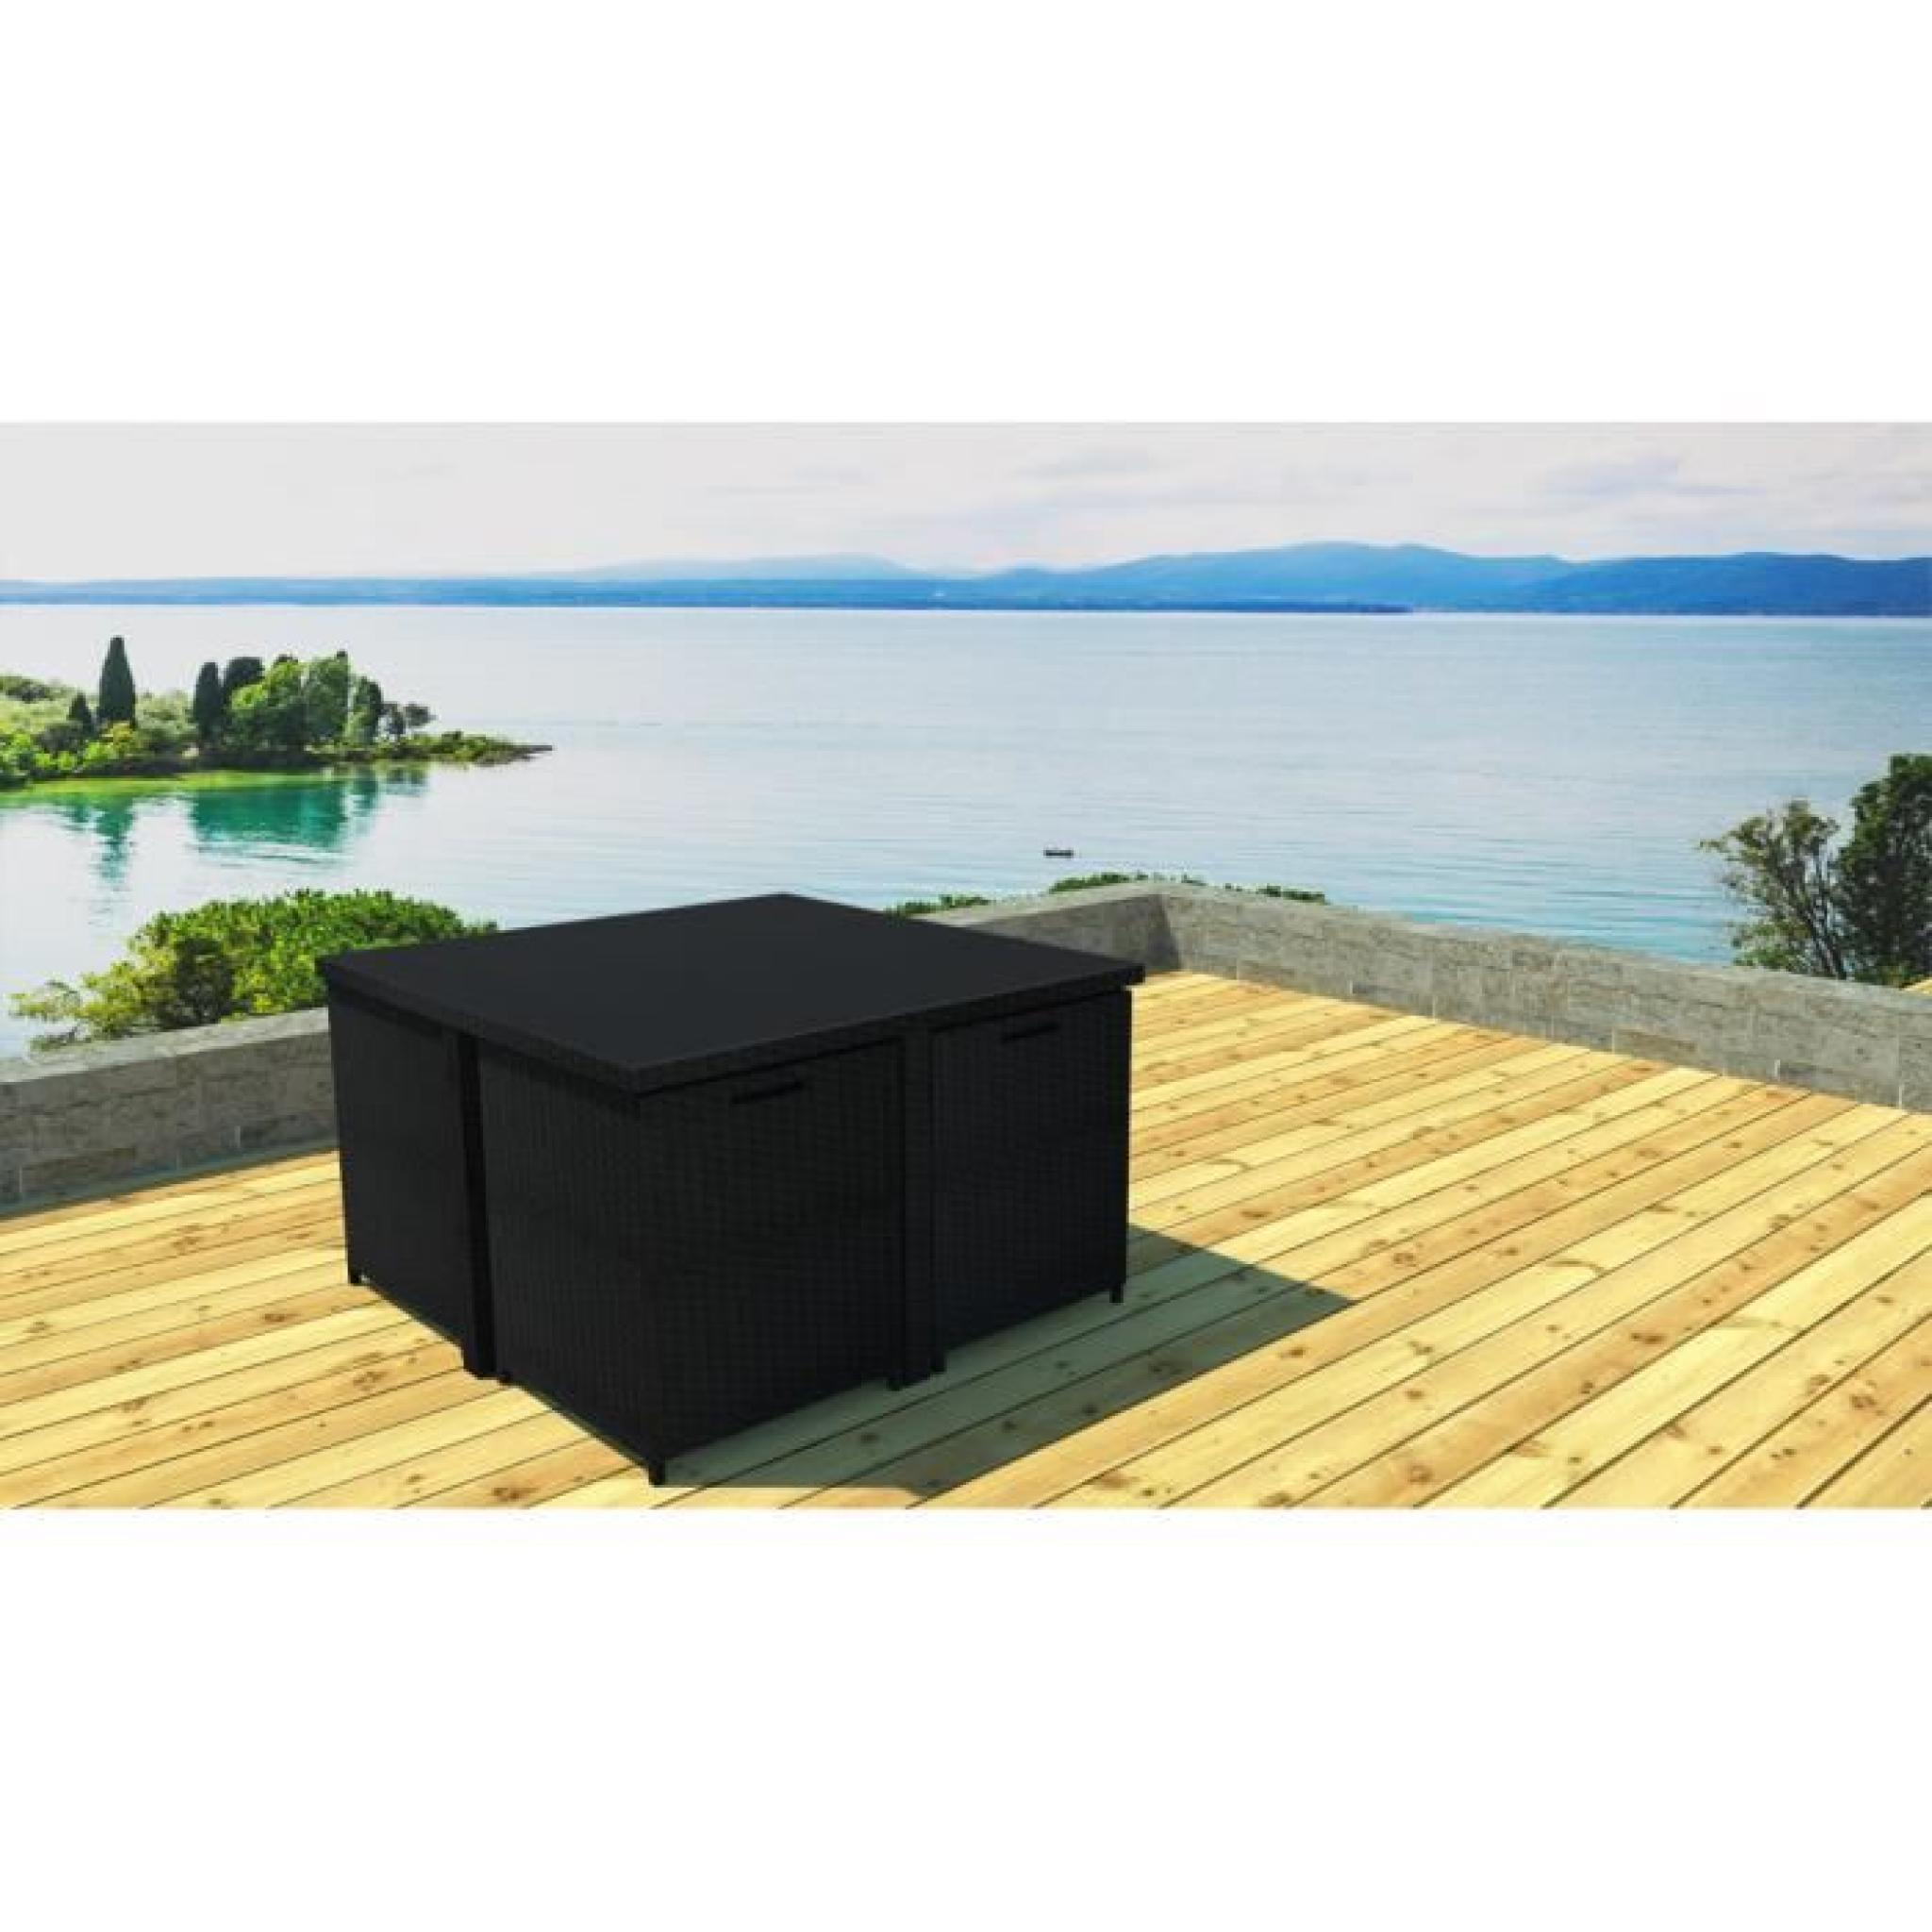 salon de jardin r sine encastrable 4 places achat vente salon de jardin en resine tressee pas. Black Bedroom Furniture Sets. Home Design Ideas